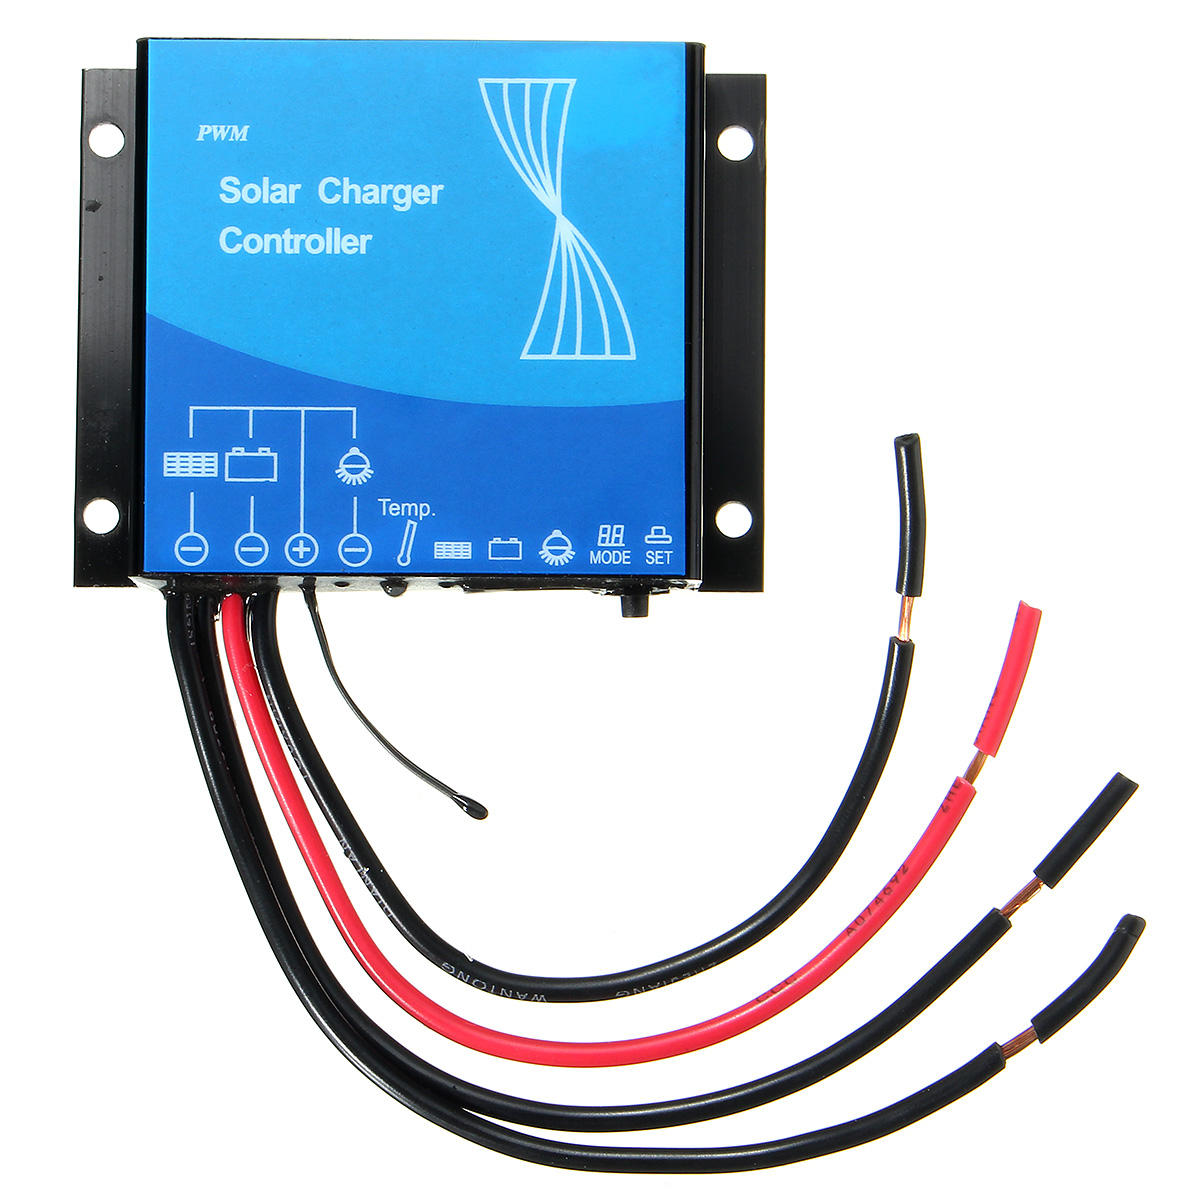 12v Ip67 12v 24v 20a Solar Charge Controller Solar Light Battery Regulator Waterproof Ip67